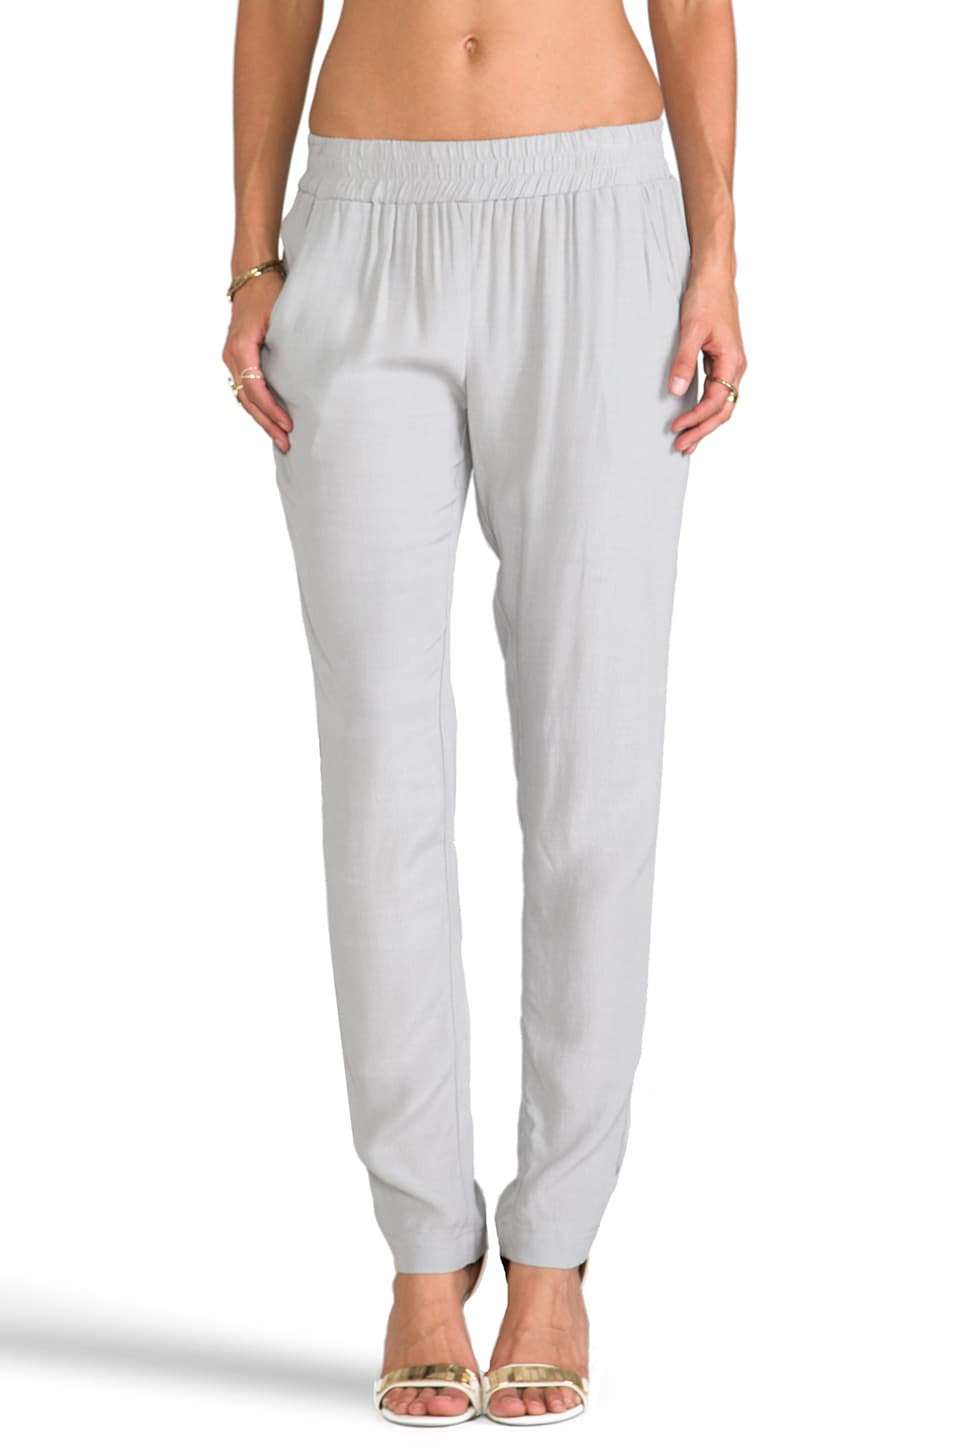 SAM&LAVI Brynn Pants in Dove Grey